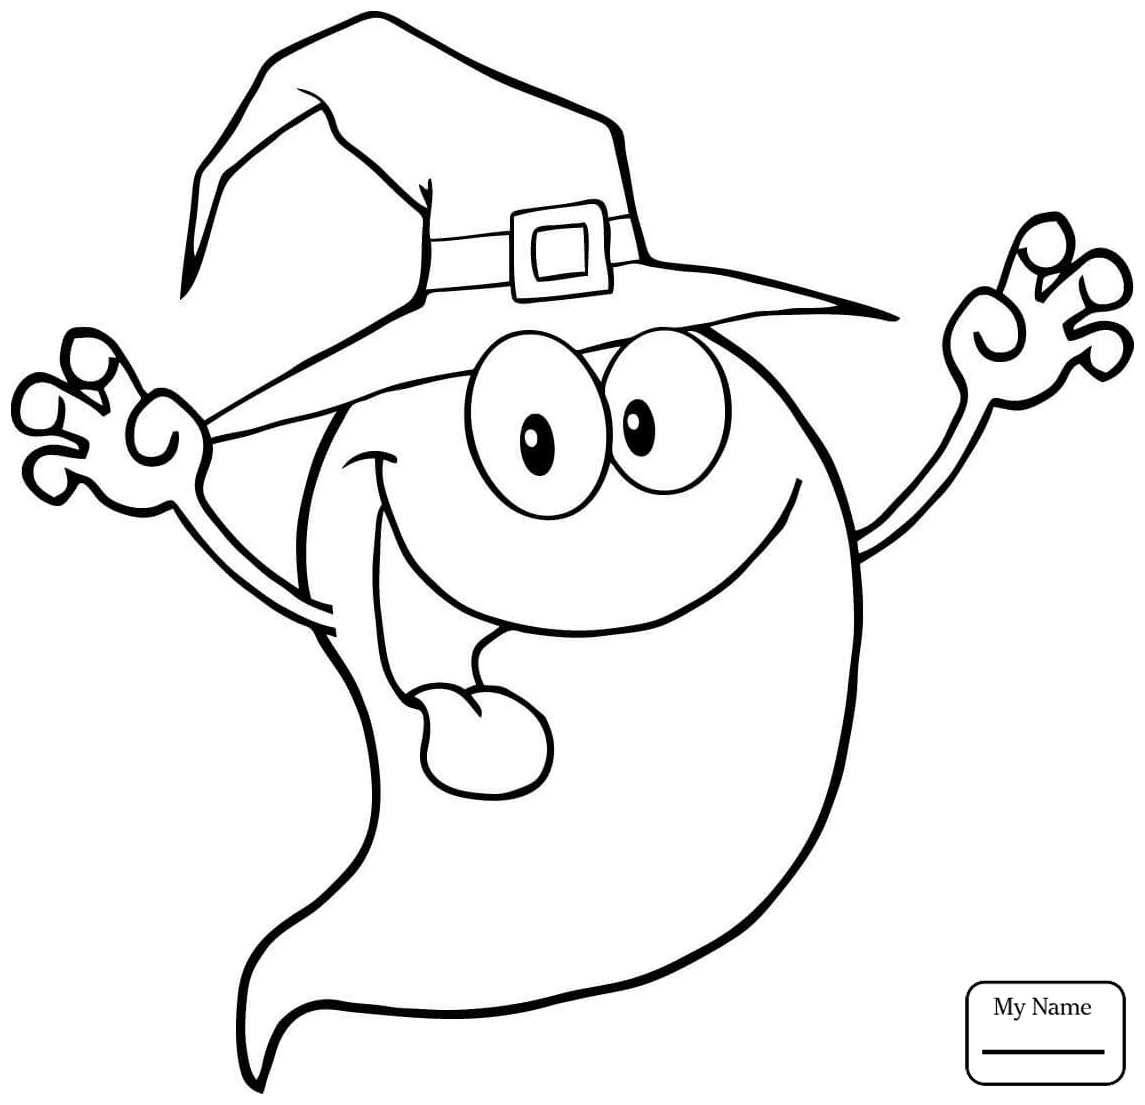 1145x1105 Coloring Pages Fantasy Mythology Cute Ghost Flying Over Rooftops